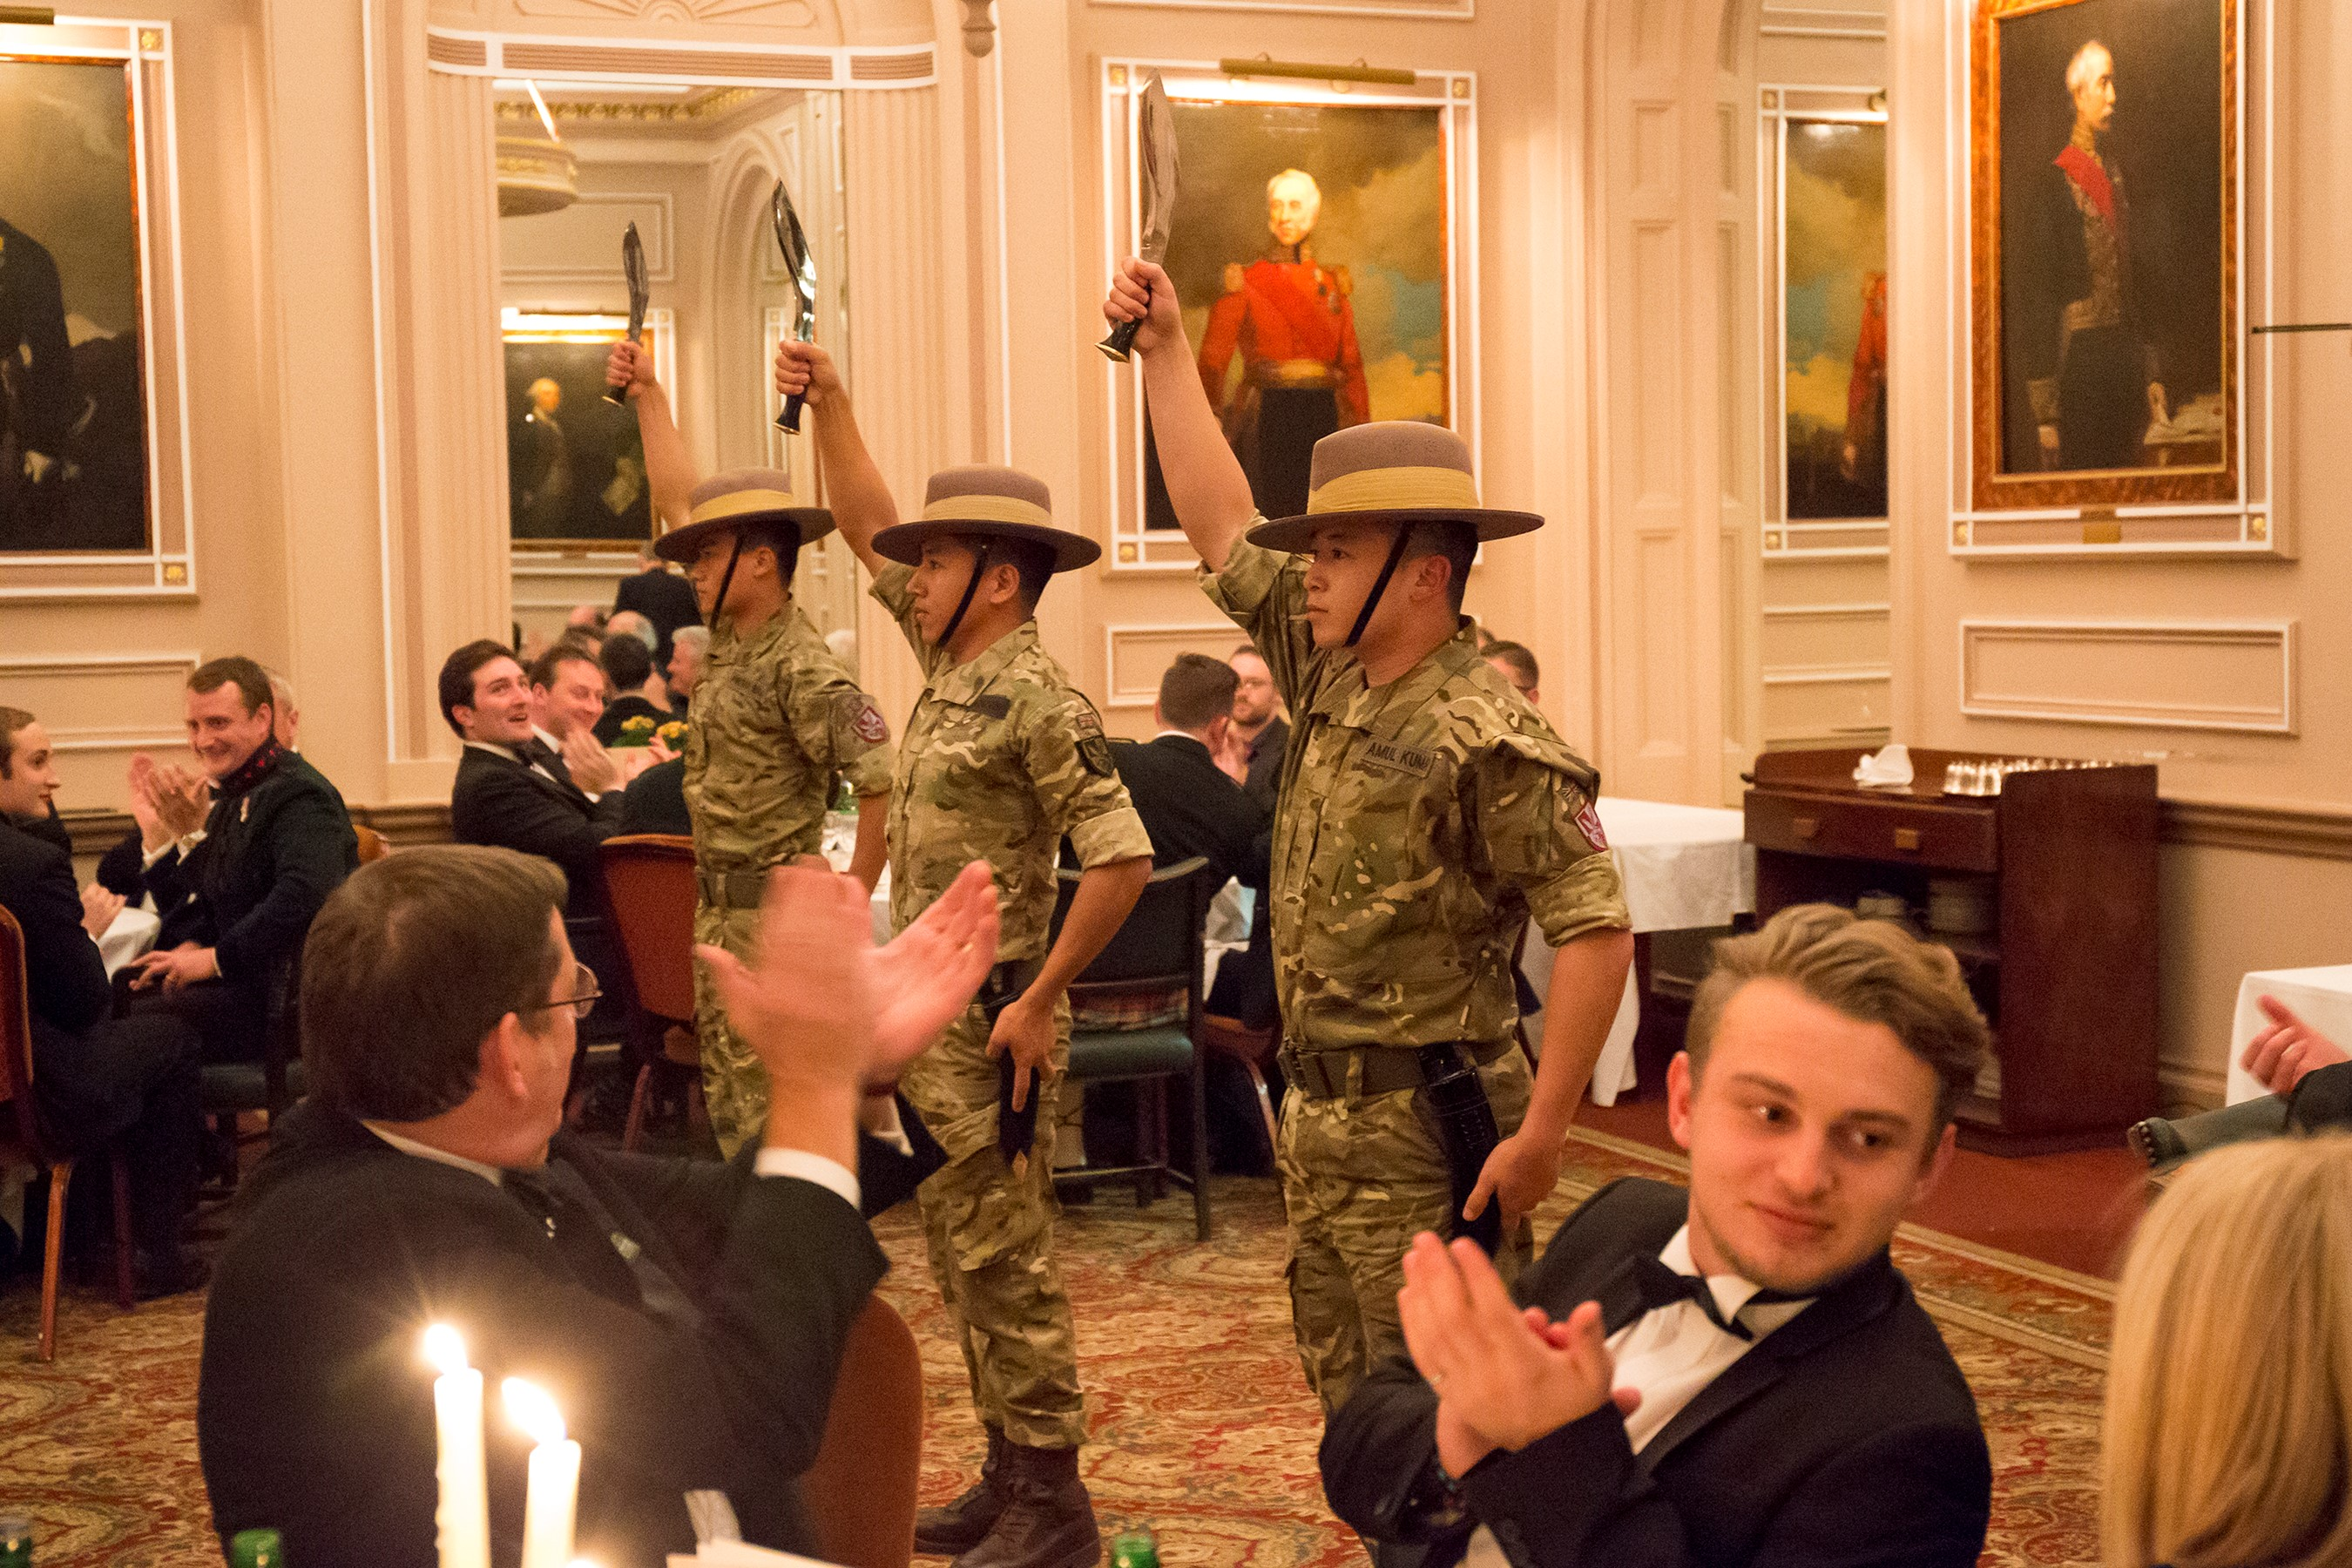 The Band of the Brigade of Gurkhas performed the Kukuri dance during the dinner